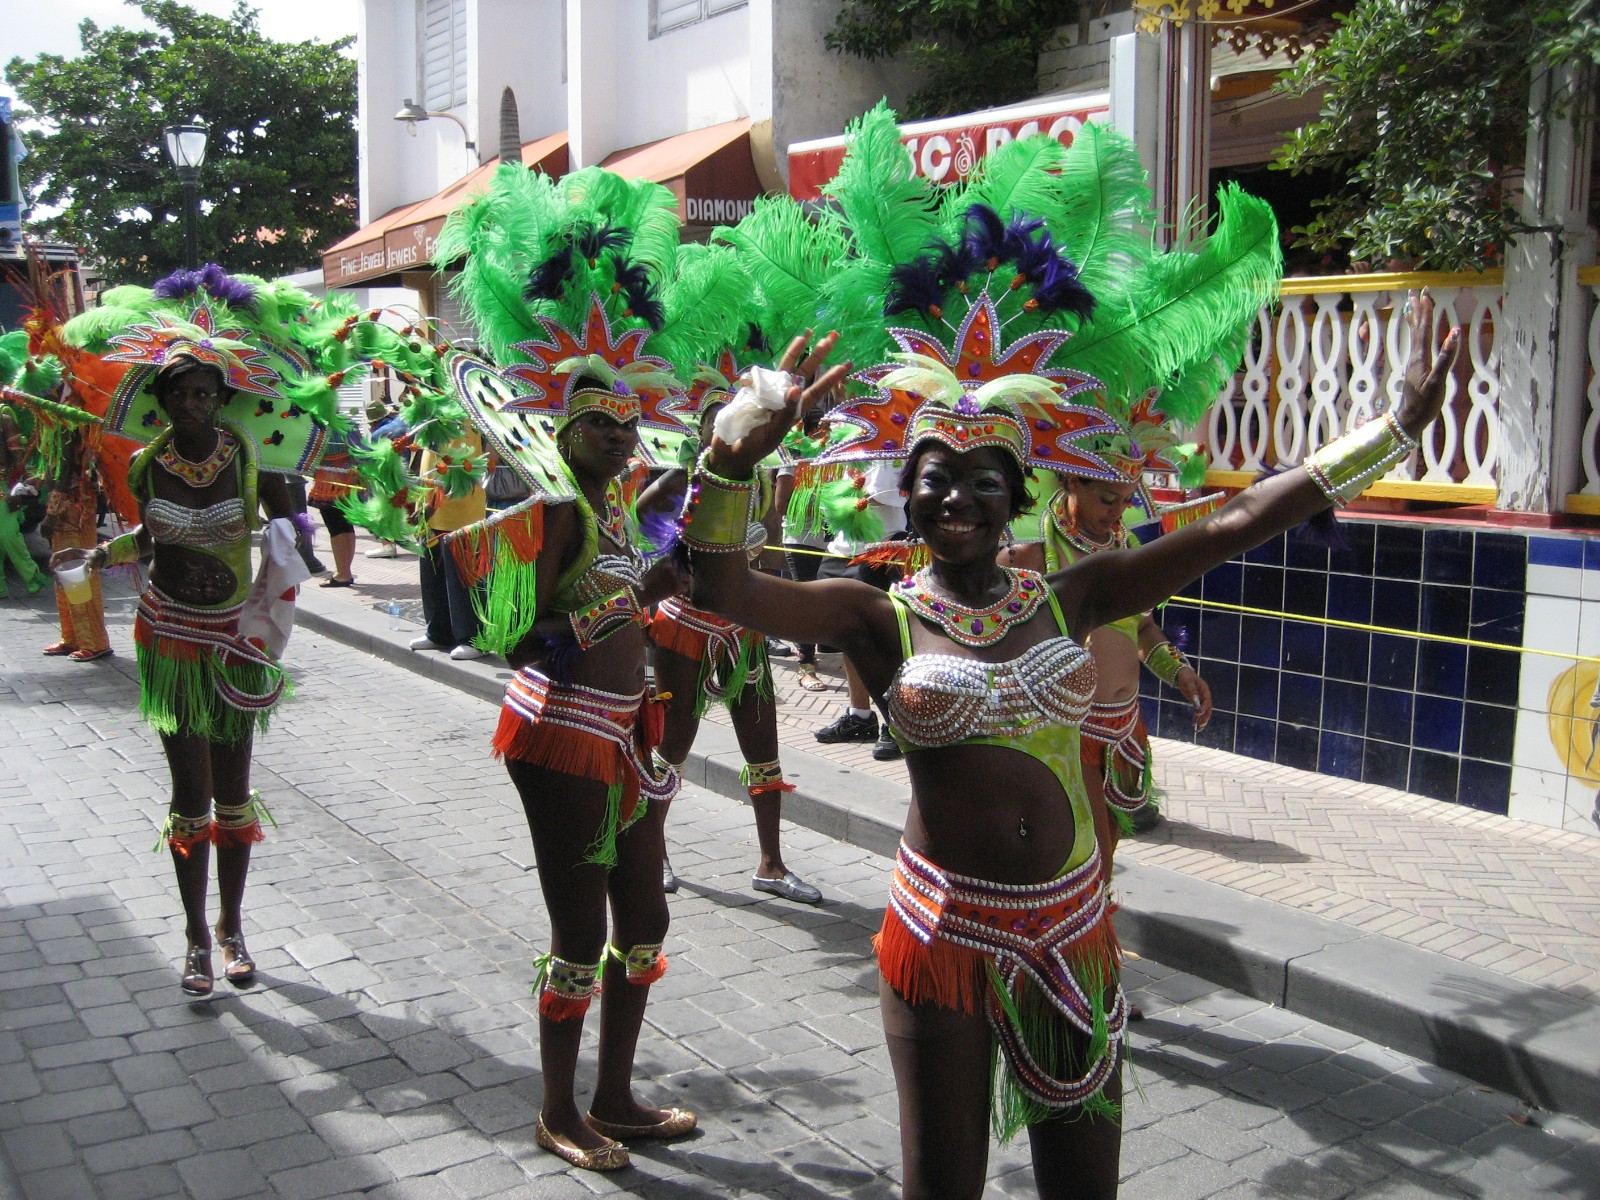 Affordably Fun Things To Do In St Maarten 171 Diary Of A Caribbean Med Student